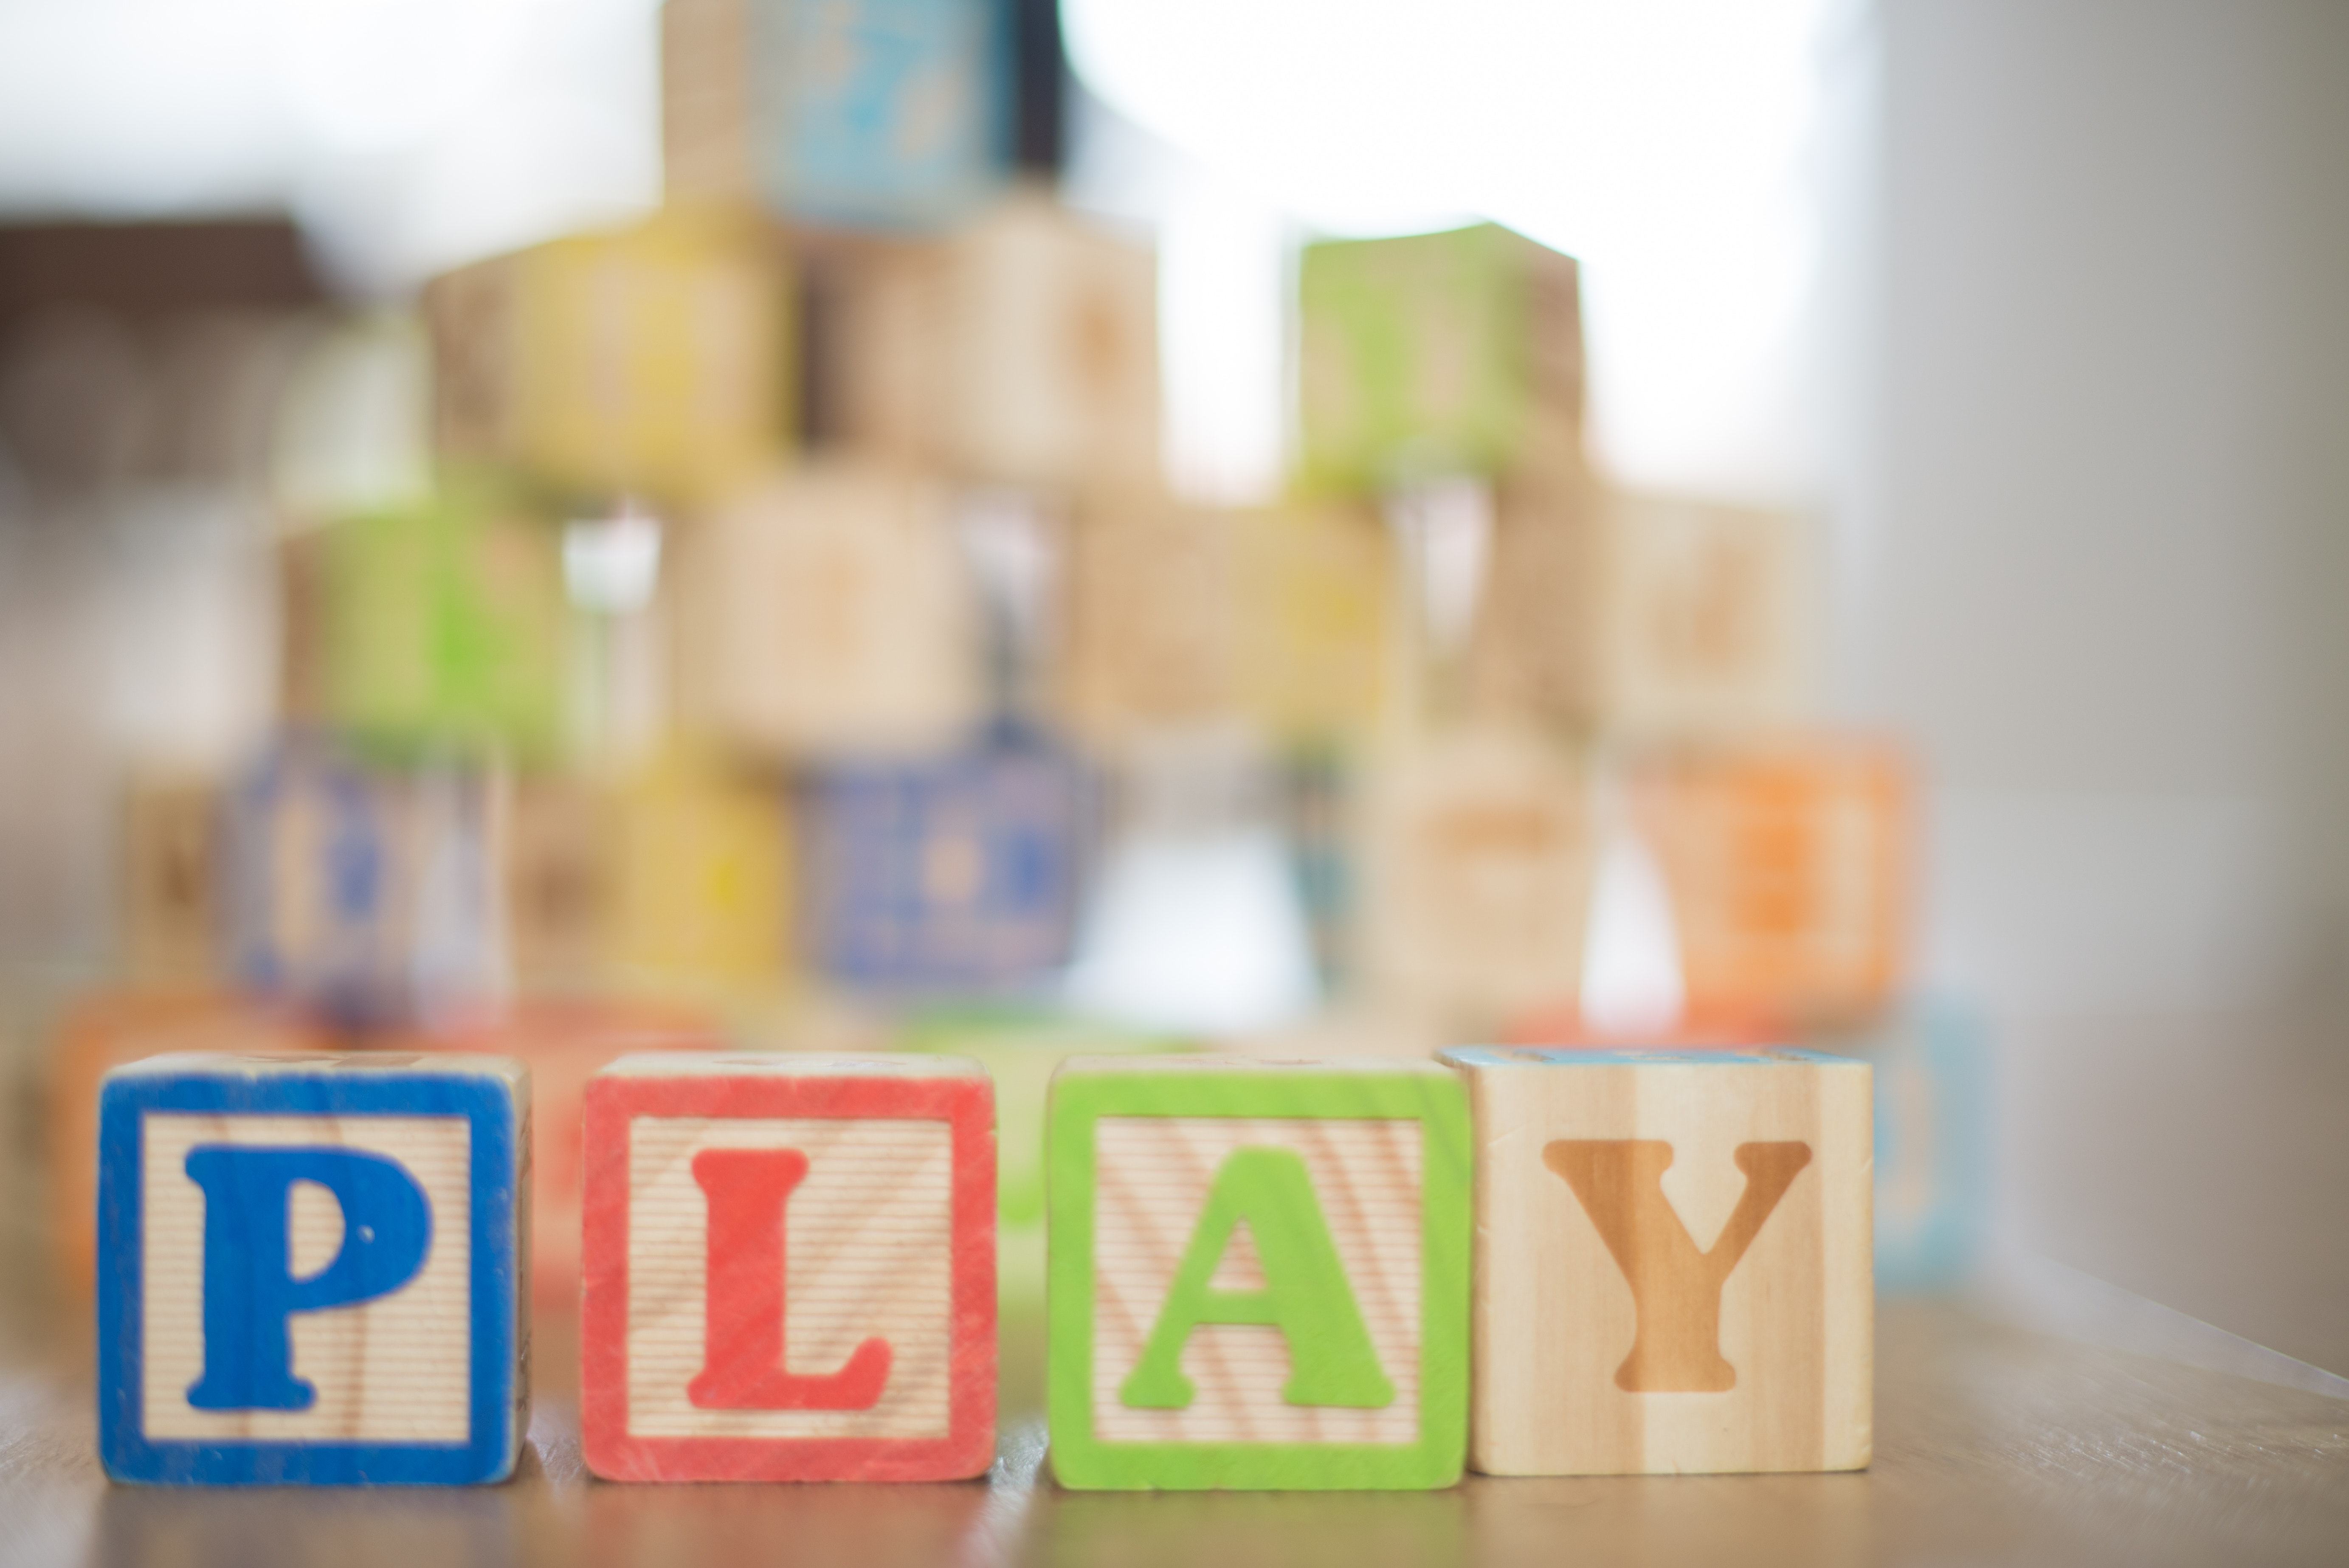 Pretend Play is Important for Preschool Children